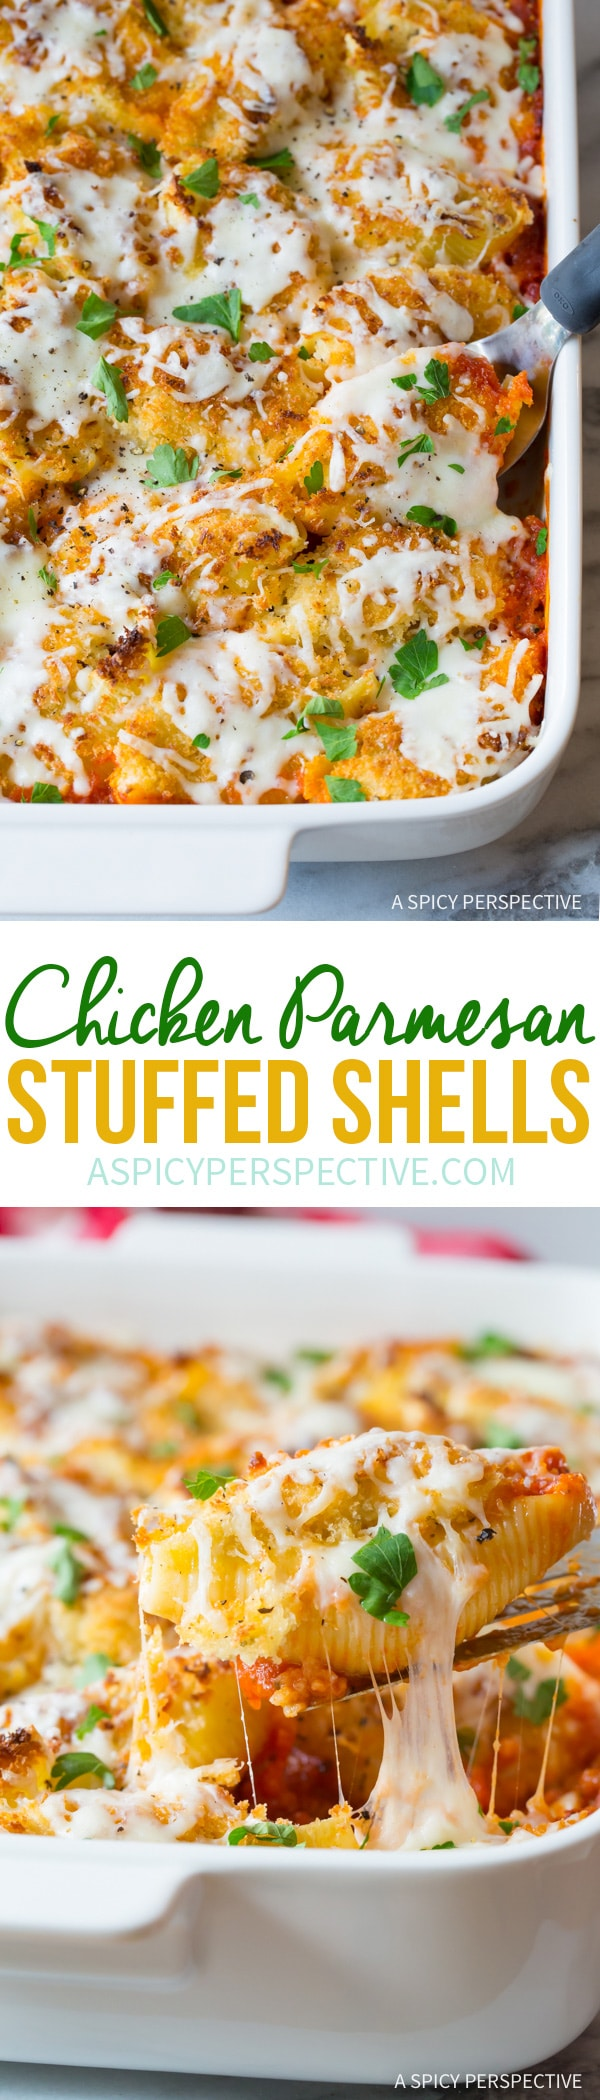 Perfect Chicken Parmesan Stuffed Shells Recipe